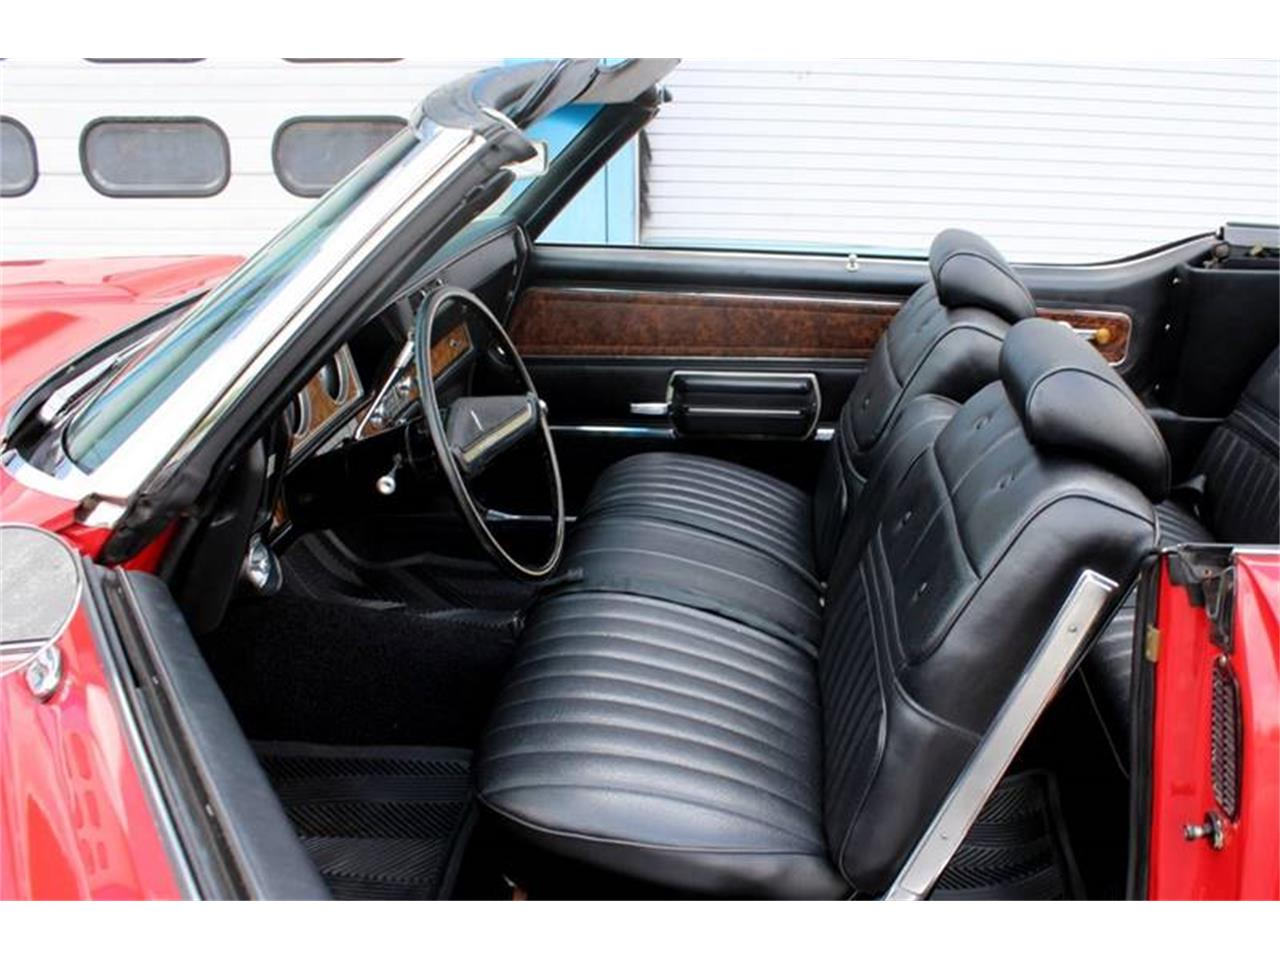 Large Picture of 1970 Cutlass - $32,900.00 Offered by PJ's Auto World - Q478